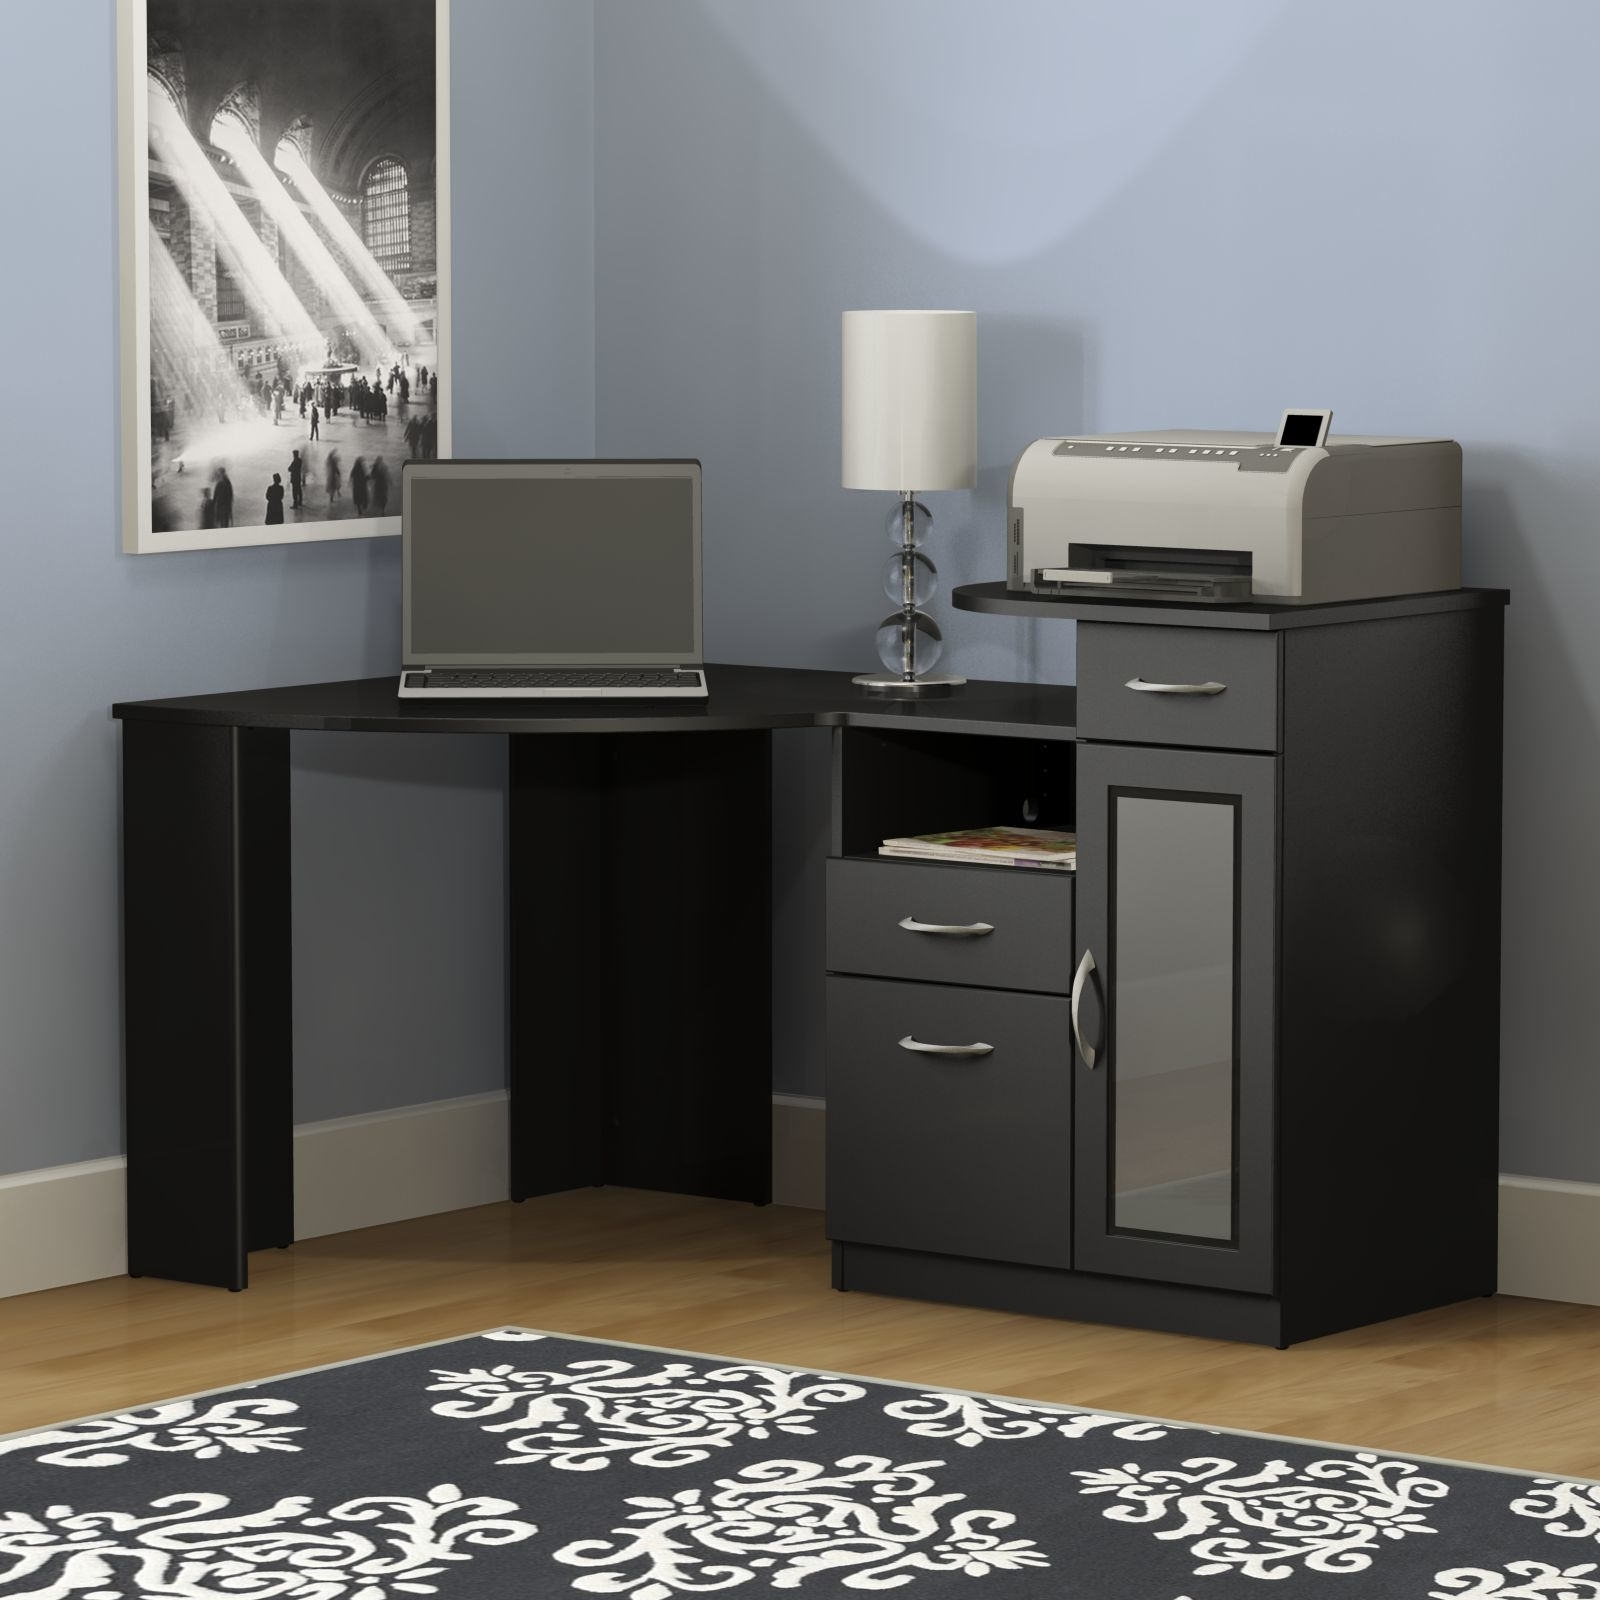 30 Computer Desk Options Buying Guide For 2018 For Current Computer Desks For Bedrooms (View 9 of 20)